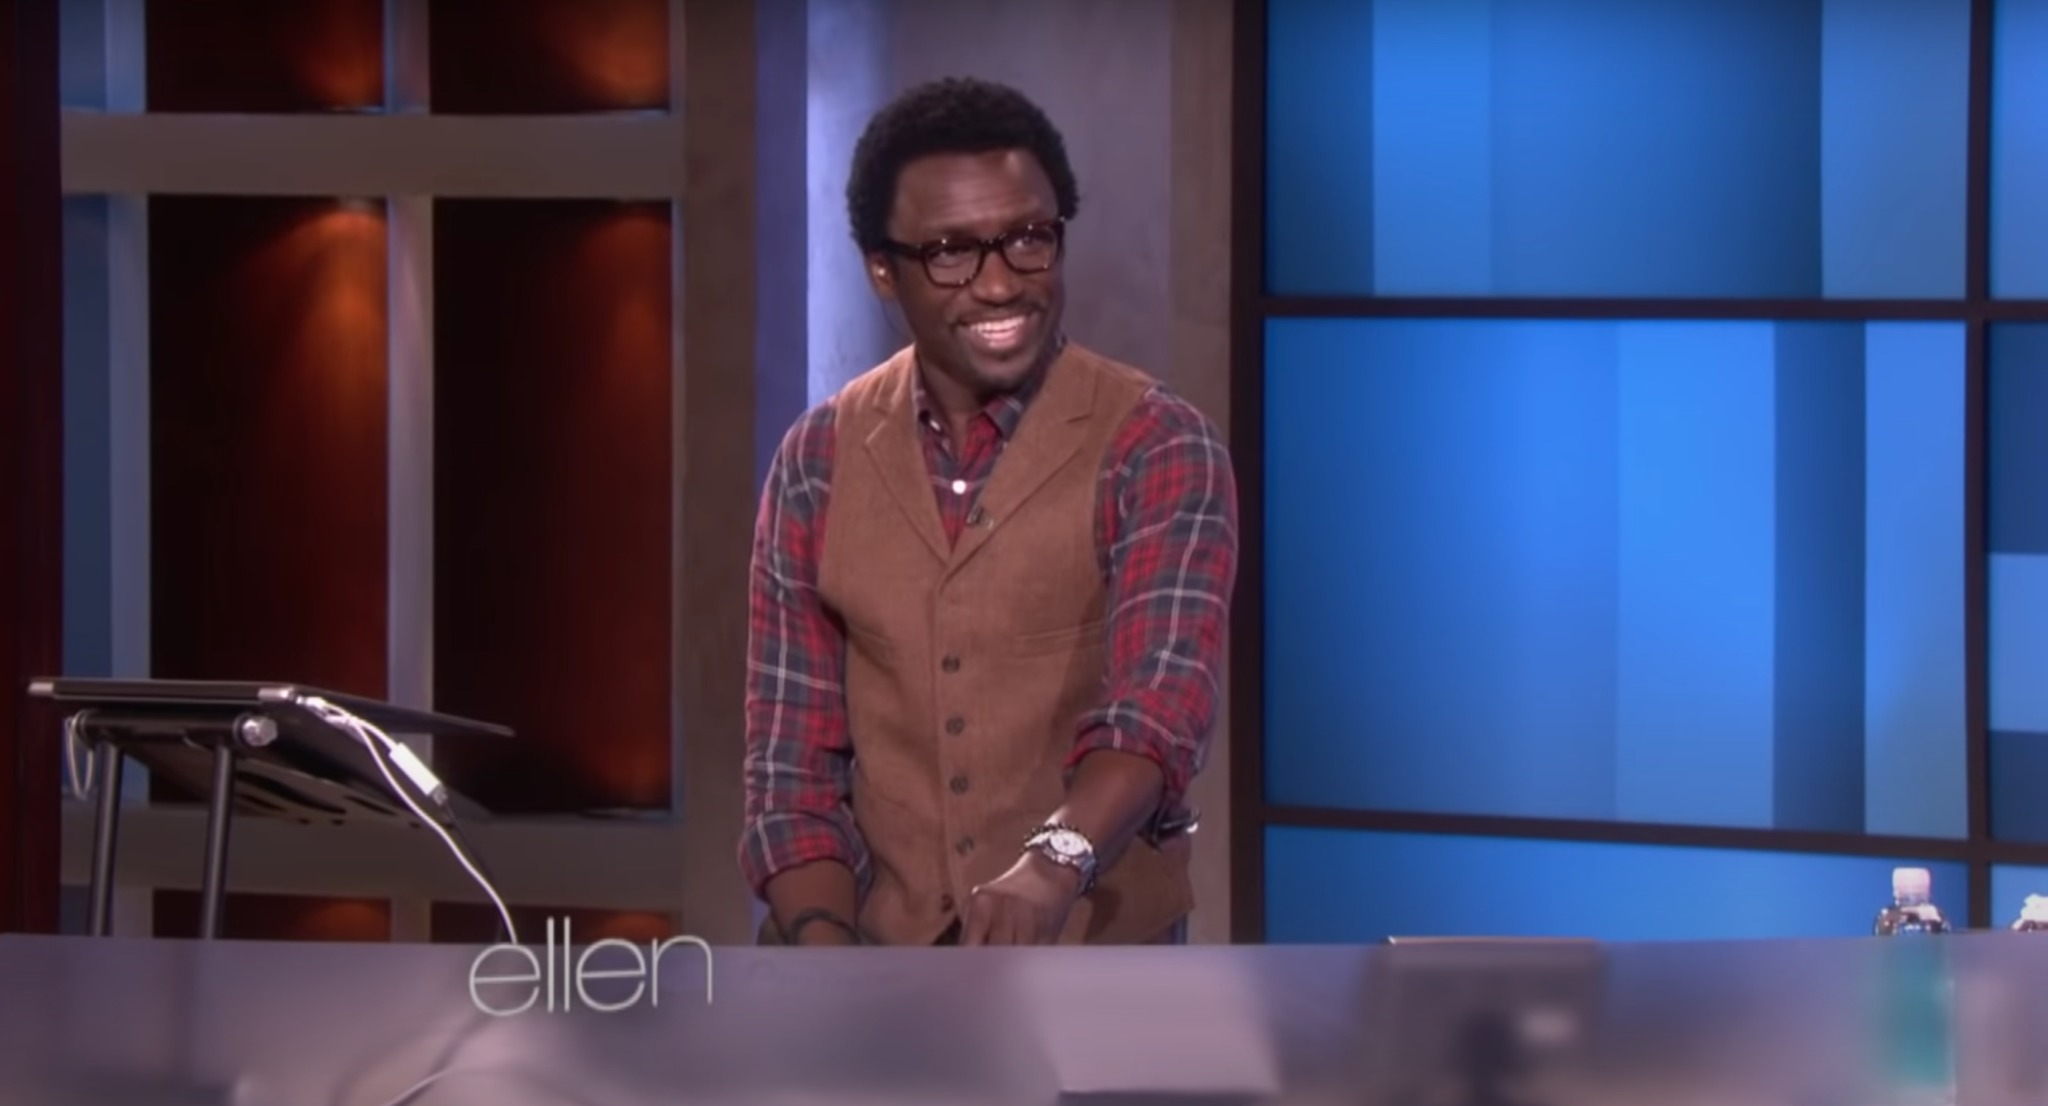 former-dj-on-the-ellen-show-stands-by-his-former-colleagues-by-confirming-toxic-work-environment-rumors